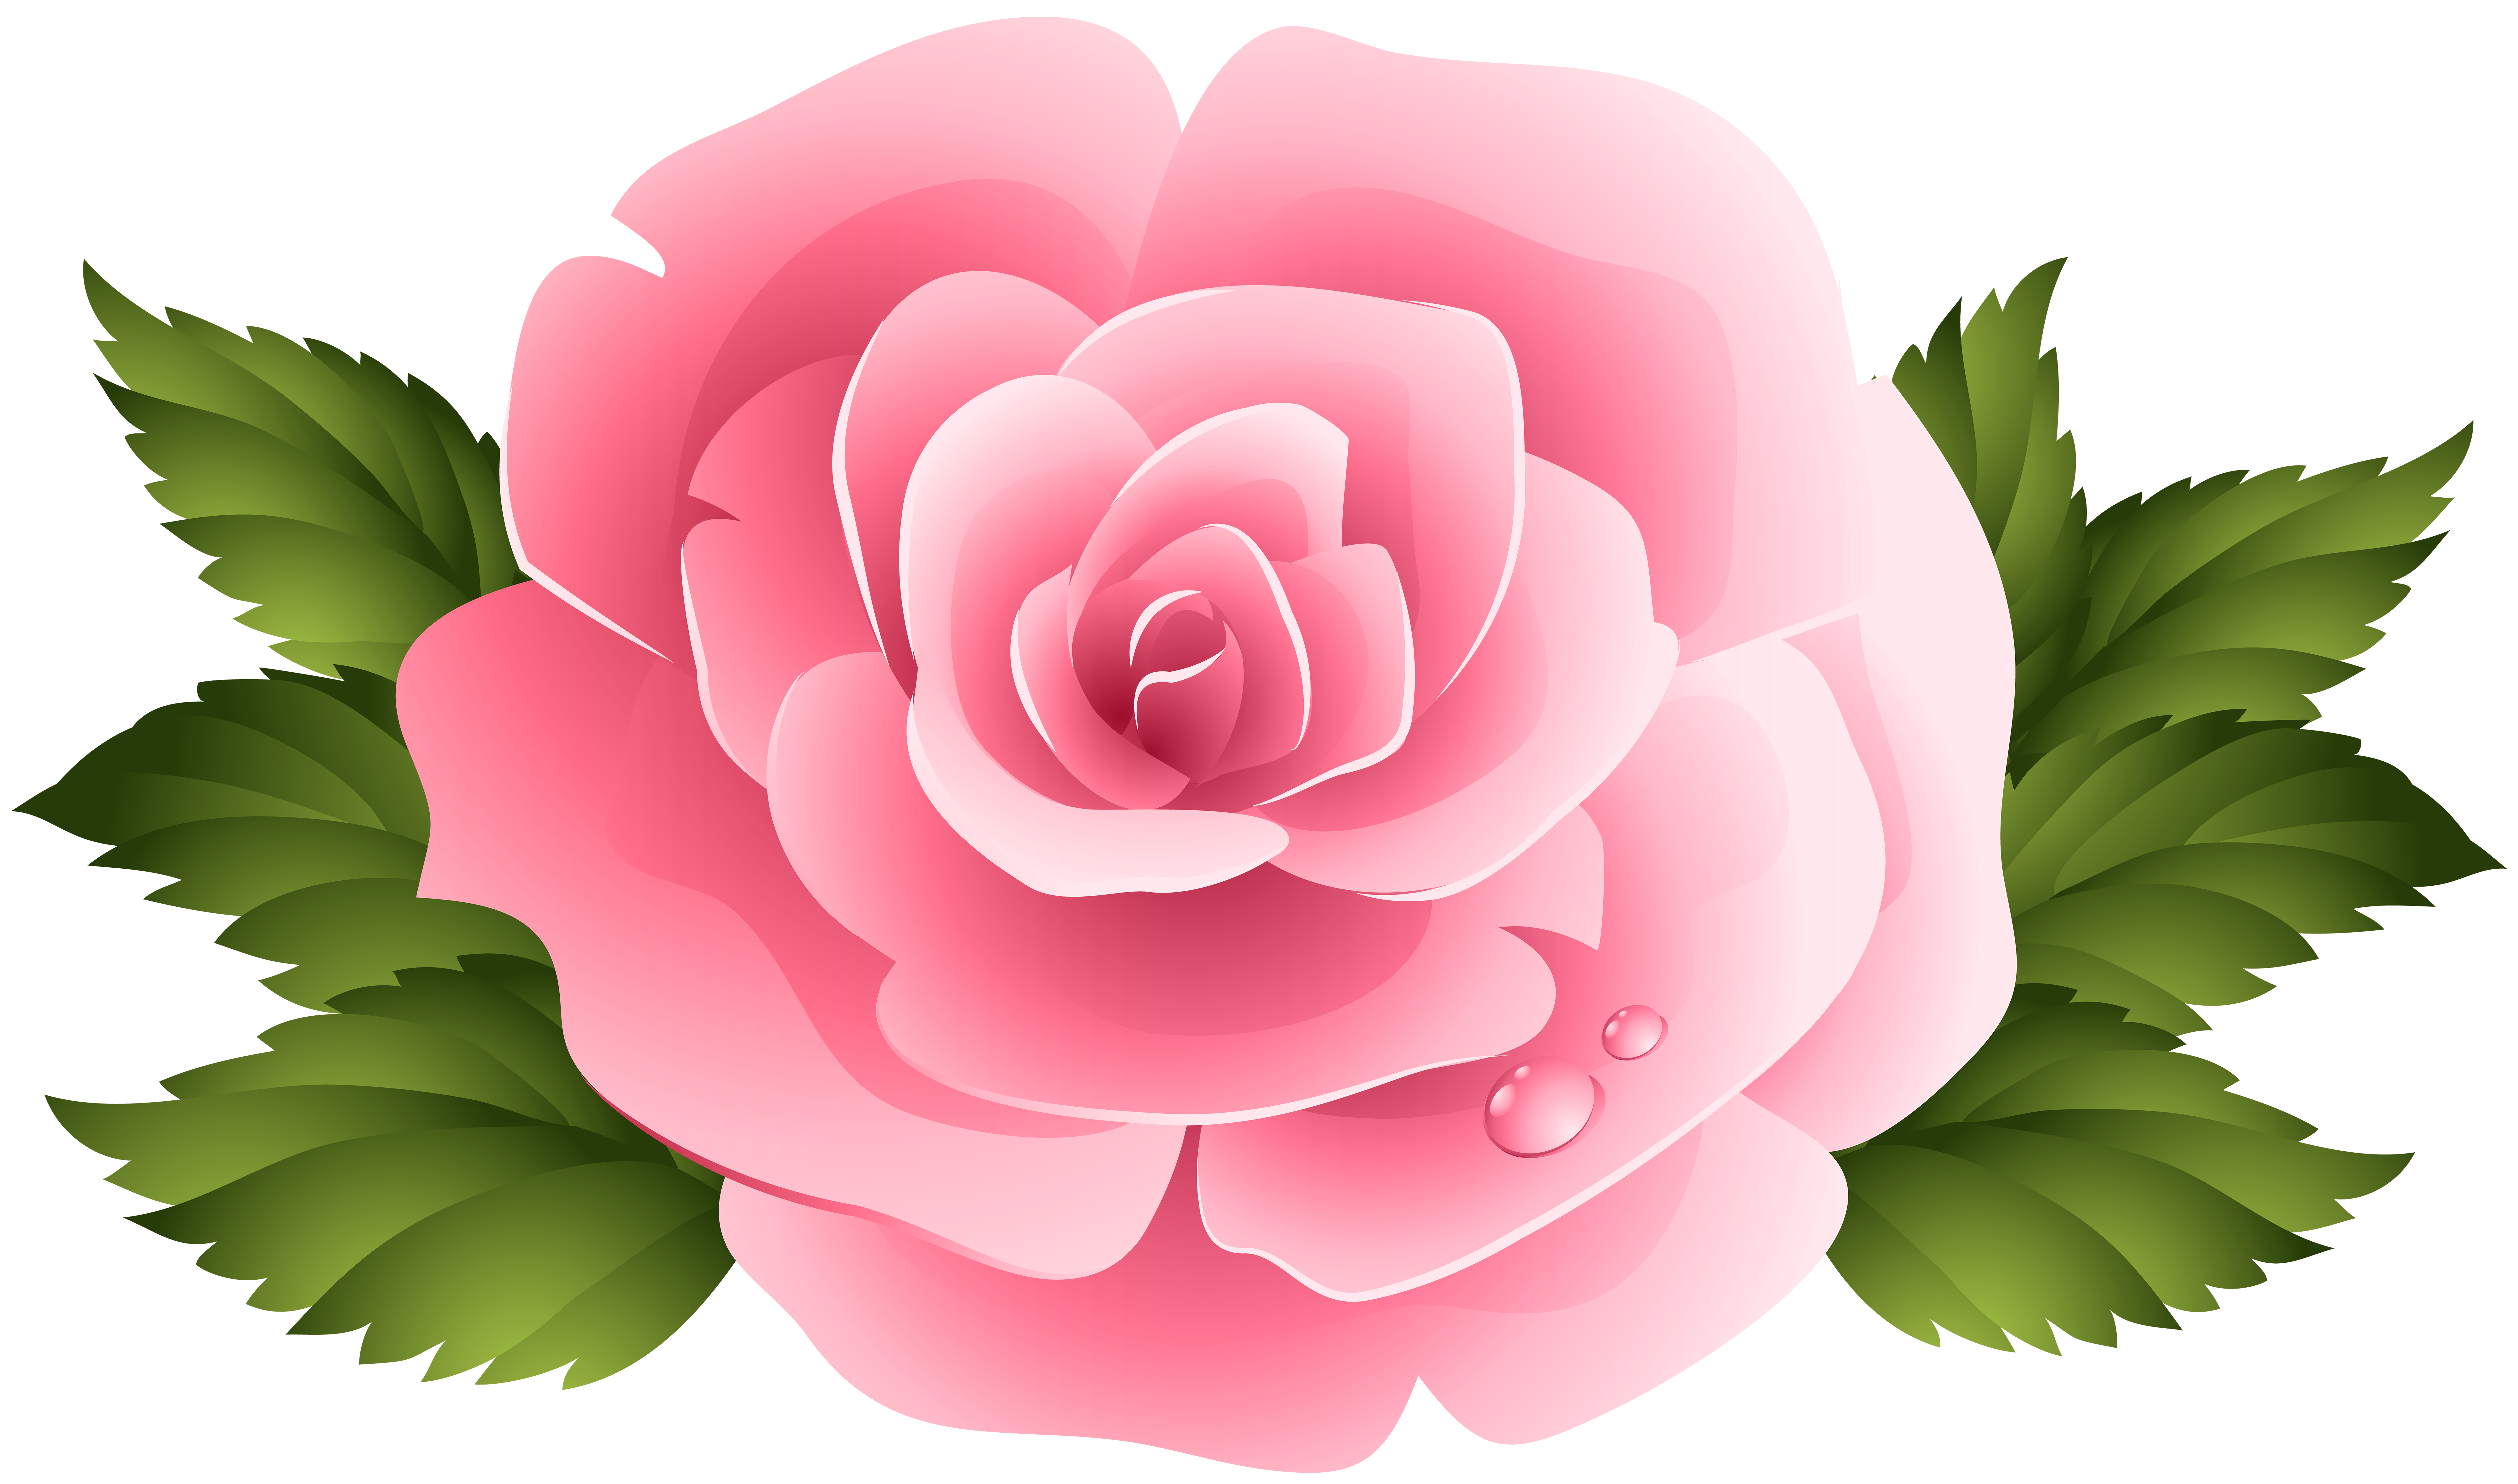 Pin by Татьяна Саенко on фотошоп Rose clipart, Purple